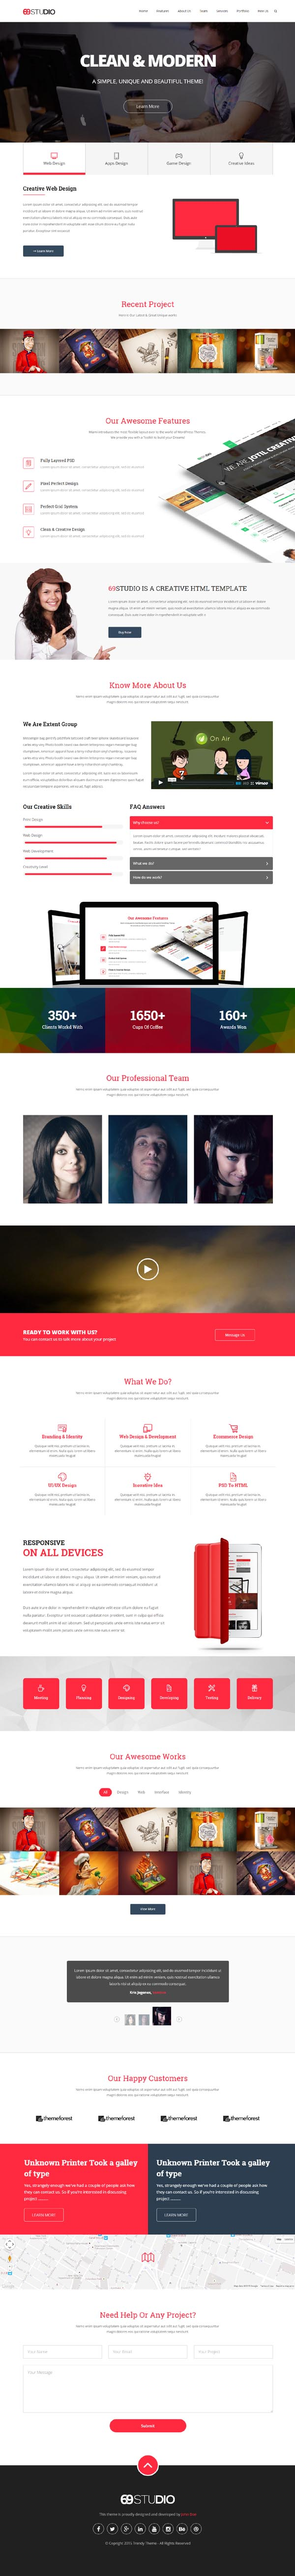 69Studio Creative Agency HTML5 Template